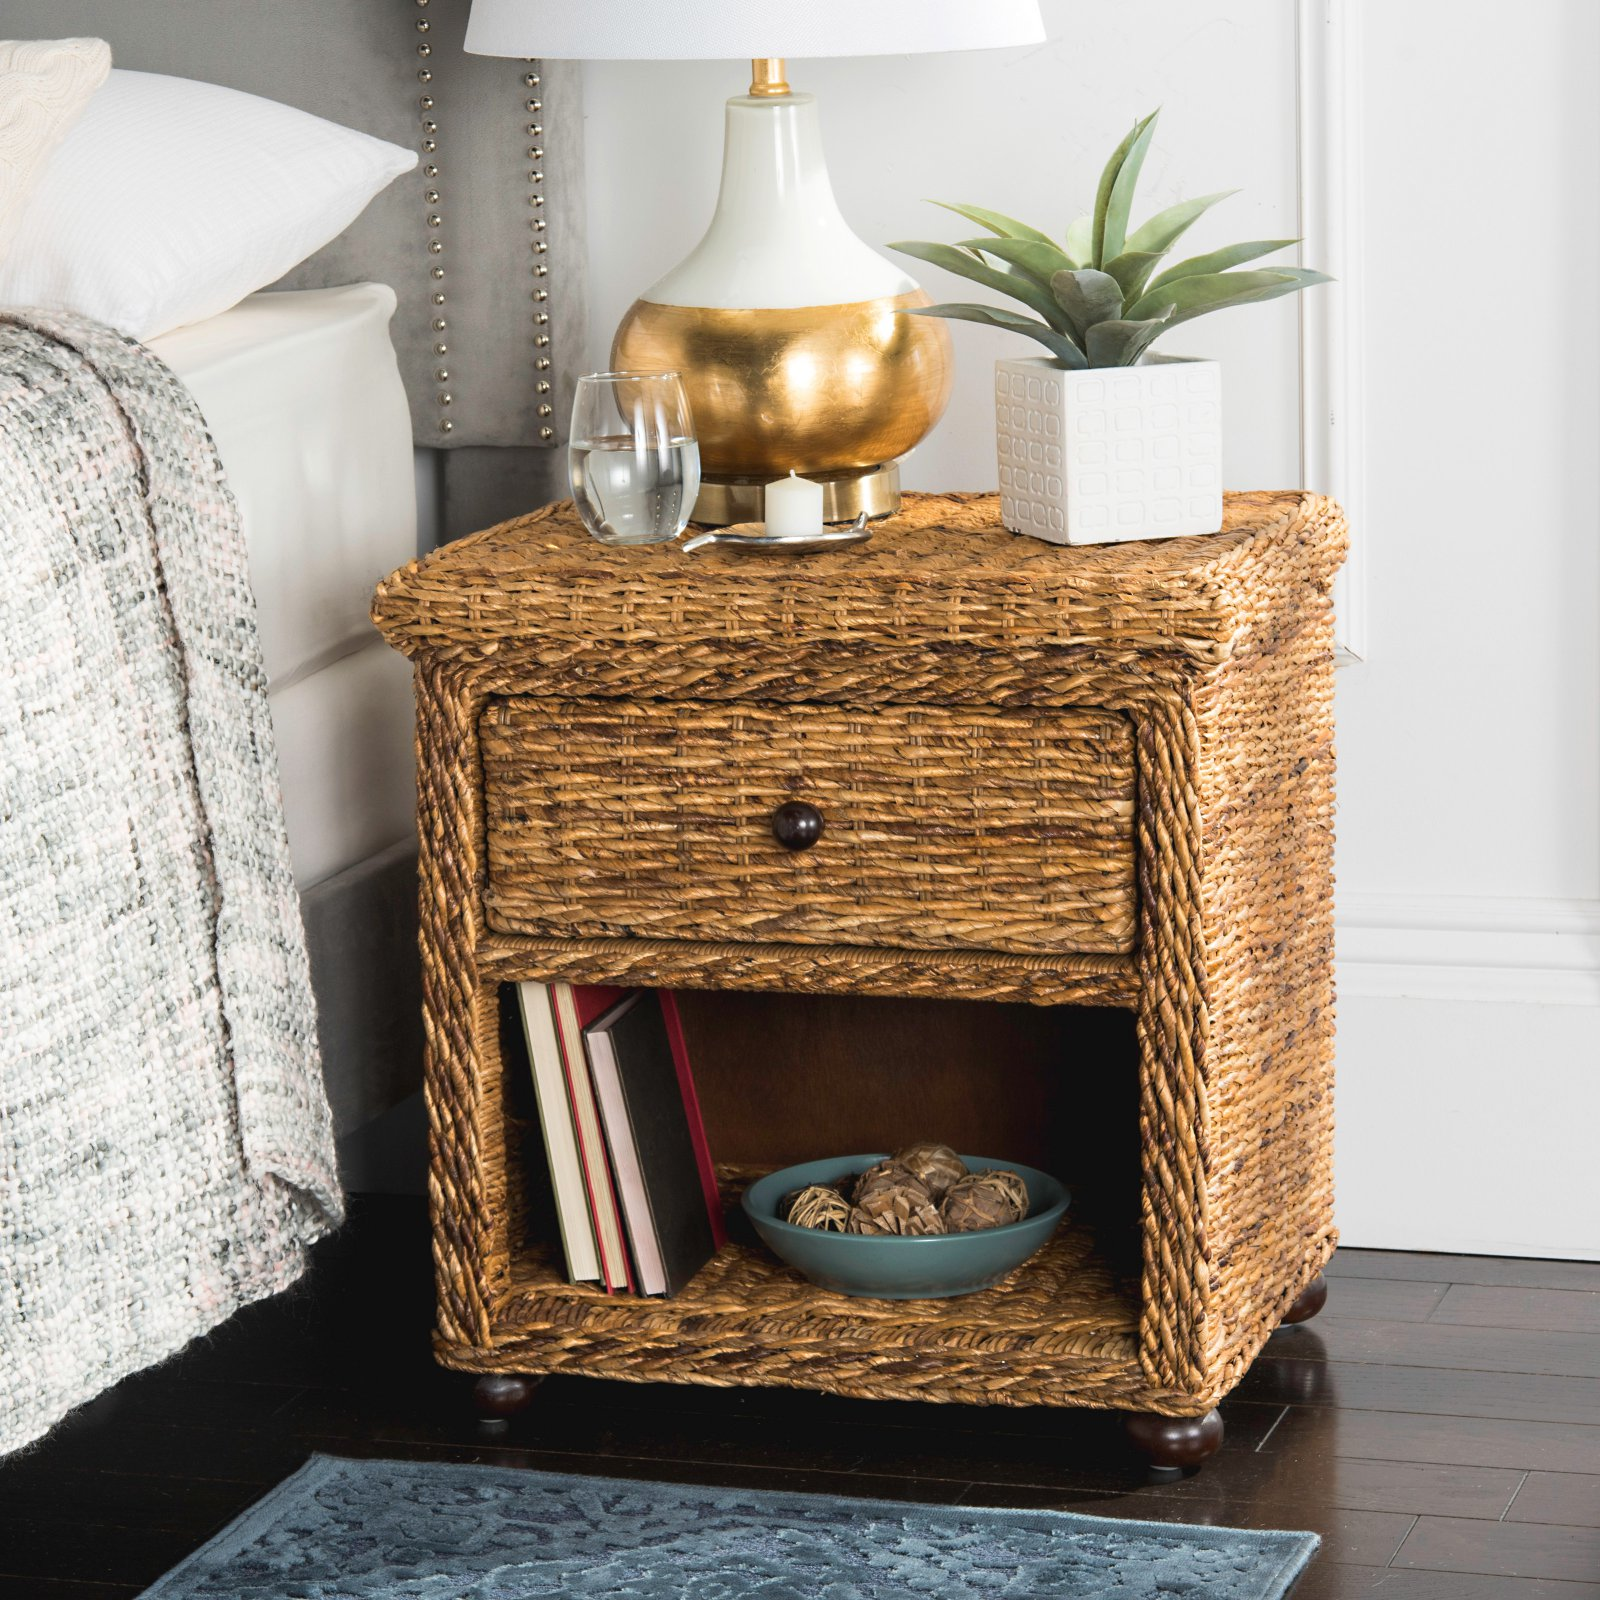 Safavieh Magi Wicker 1-Drawer Nightstand, Natural Brown